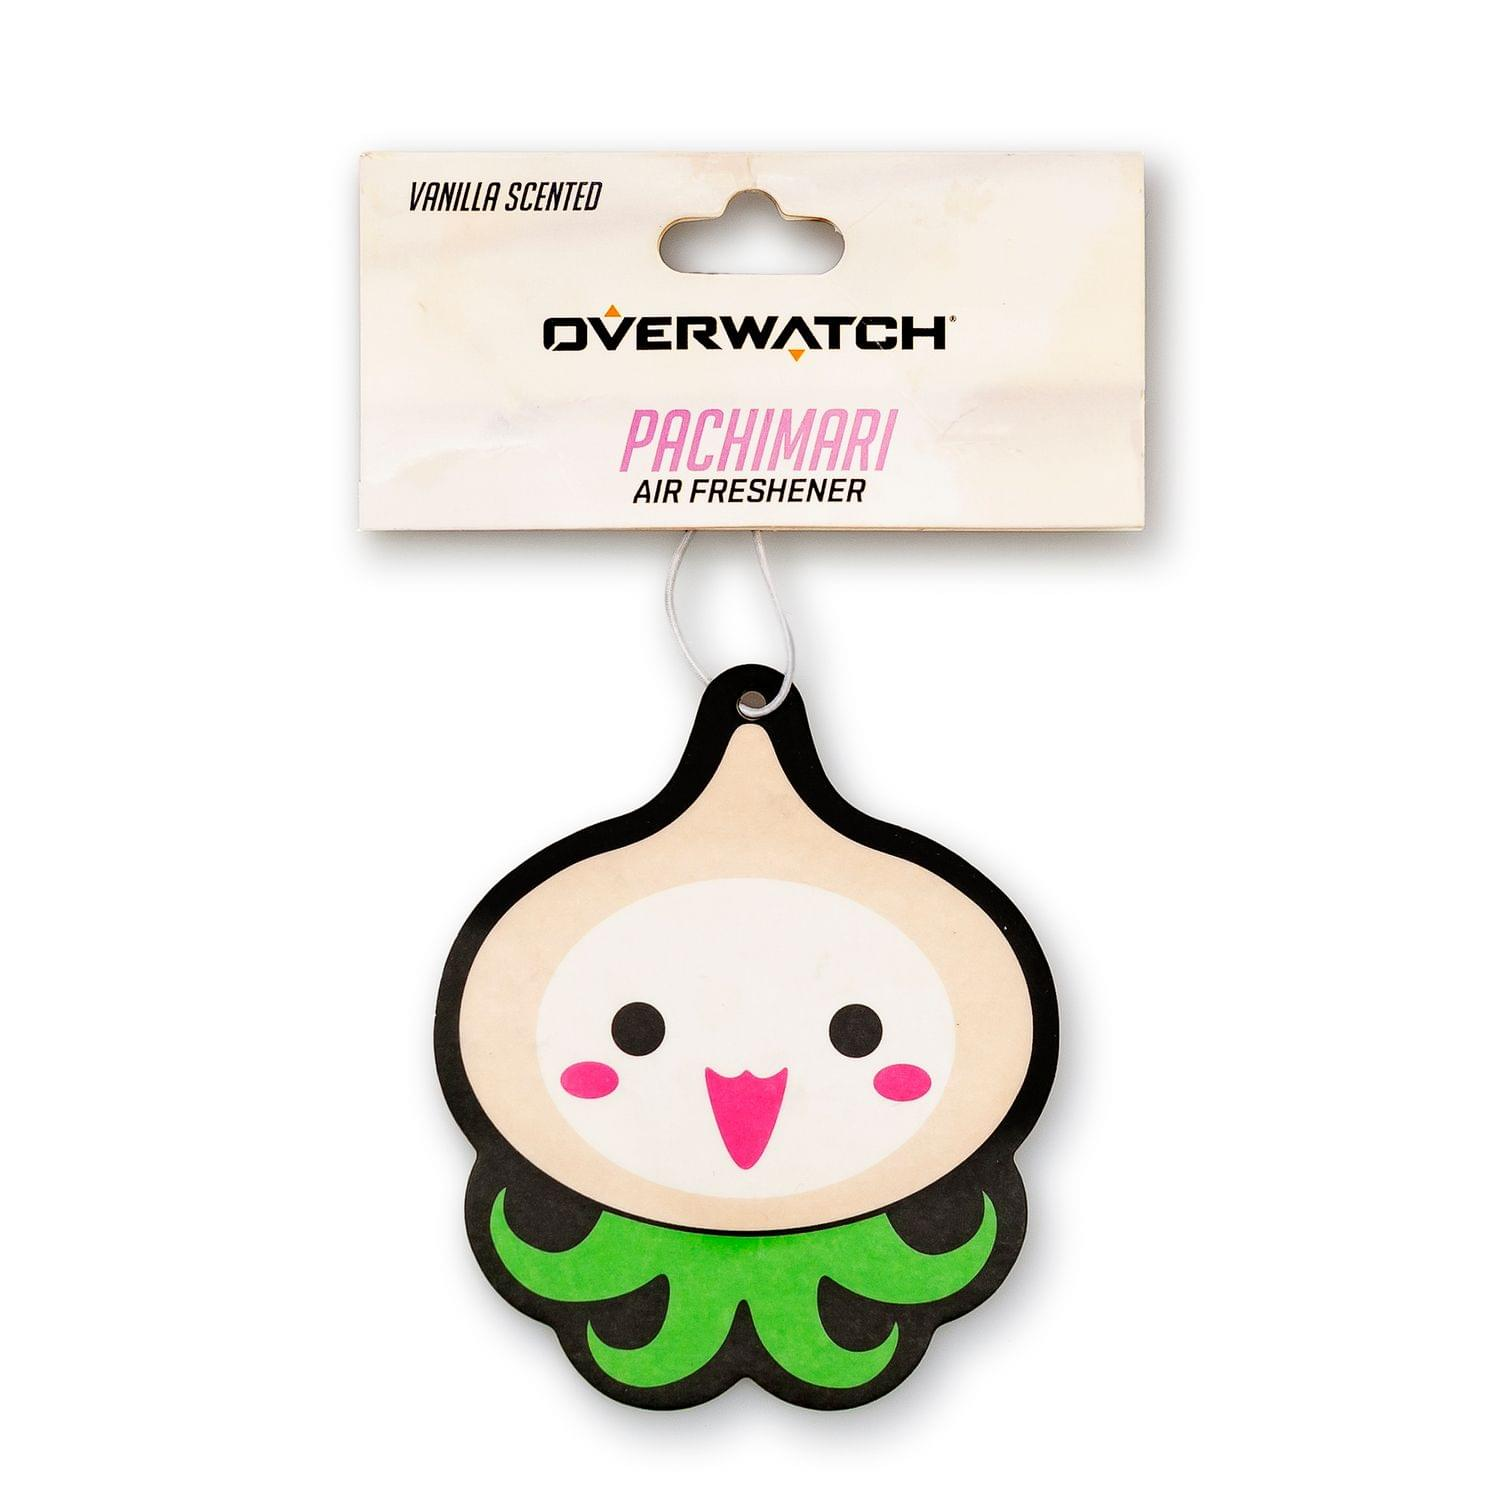 OFFICIAL Pachimari Air Freshener | Feat. Pachimari of Overwatch | Vanilla Scent